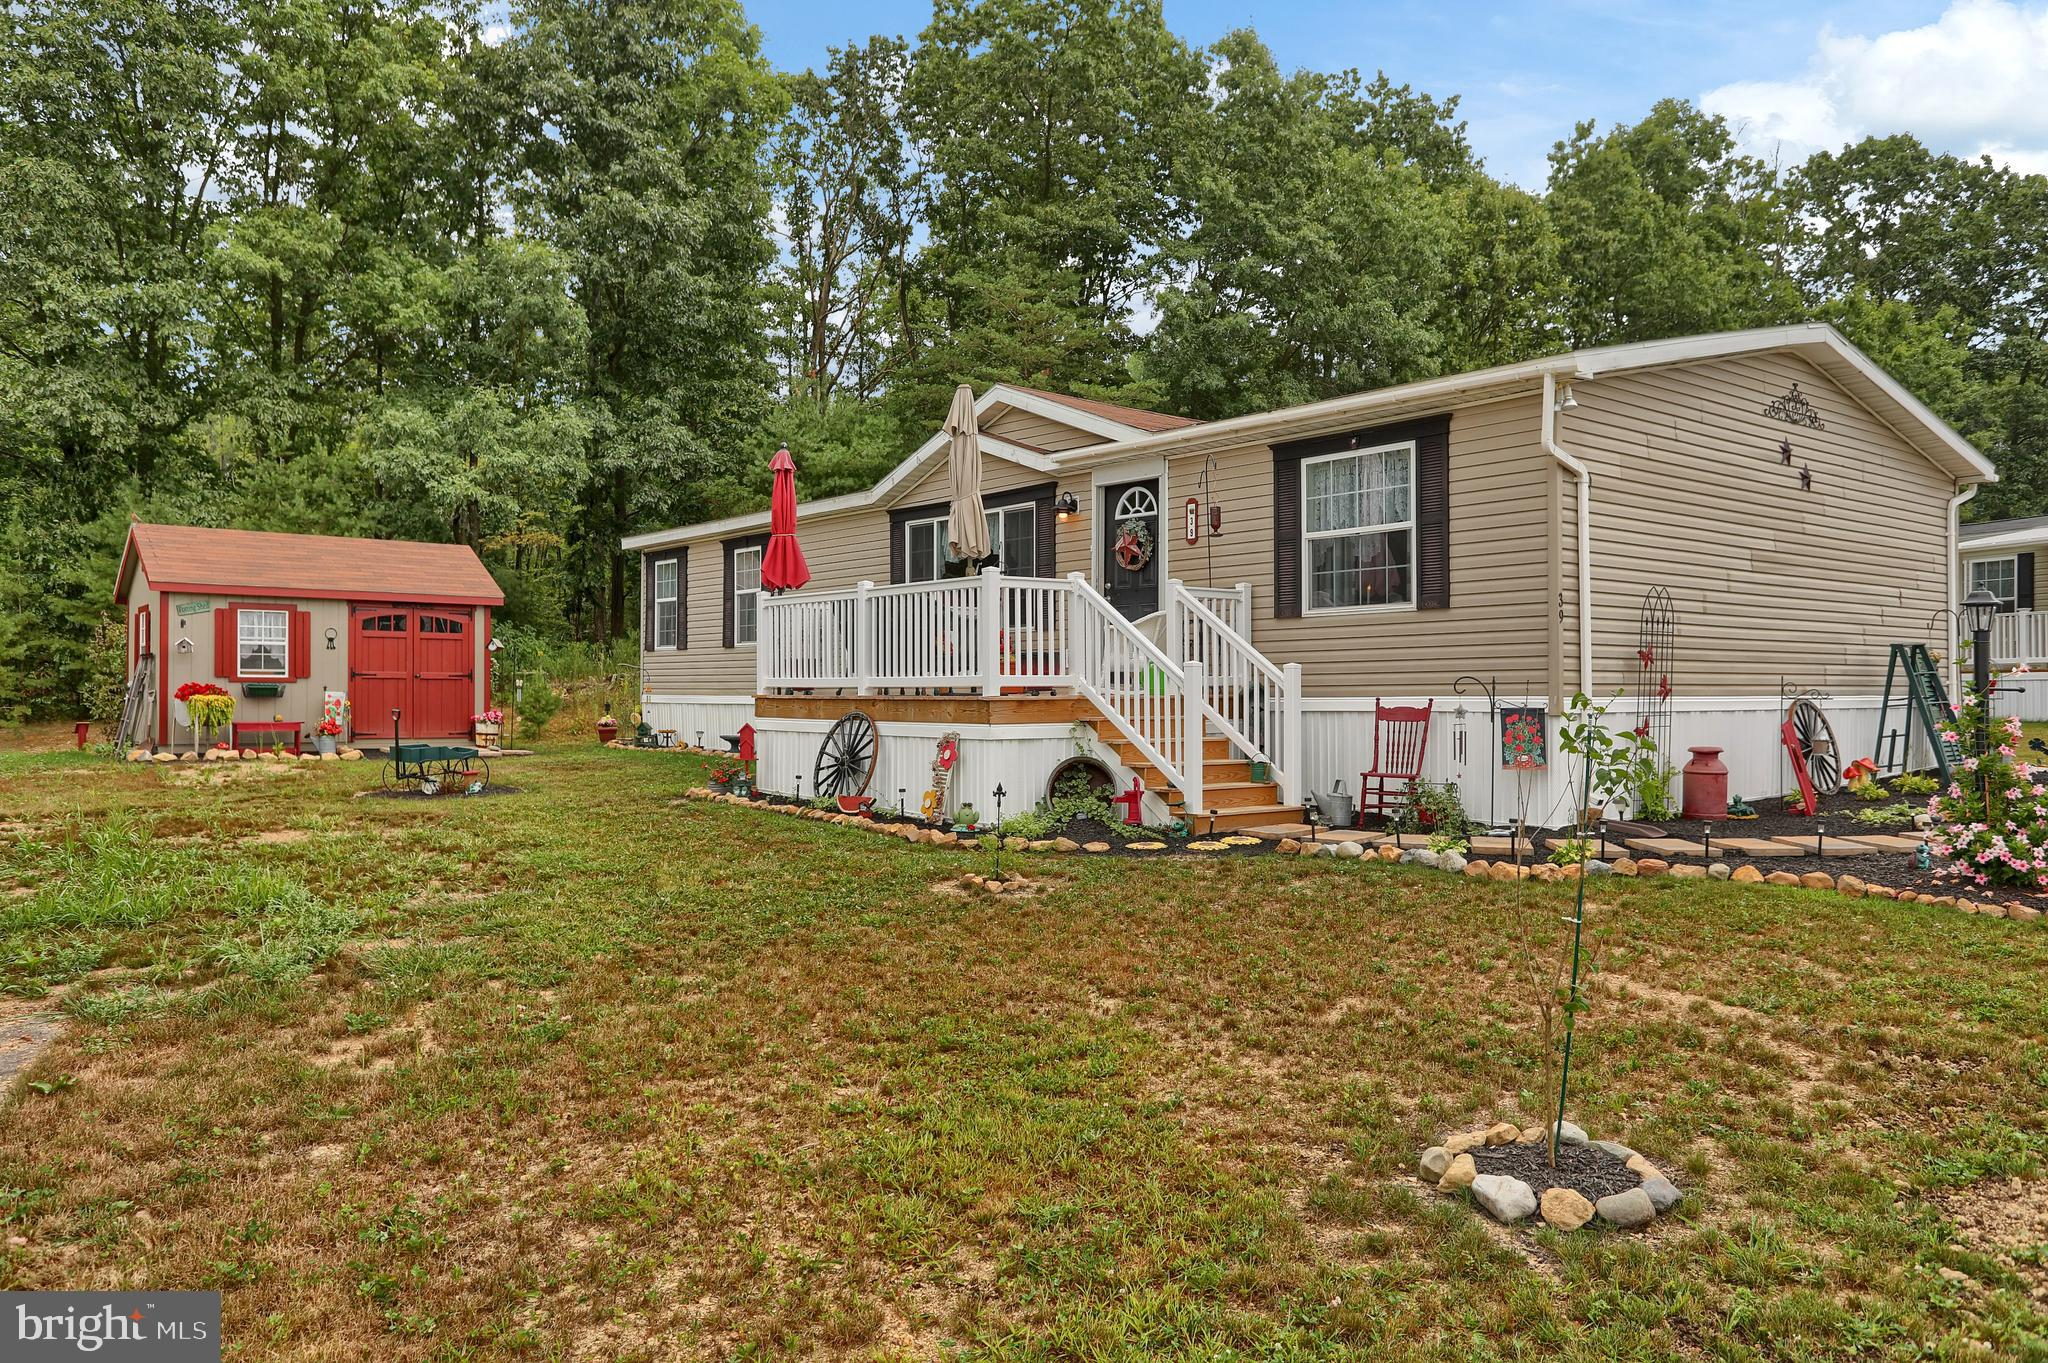 39 MEADOWVIEW DRIVE, NEW BLOOMFIELD, PA 17068